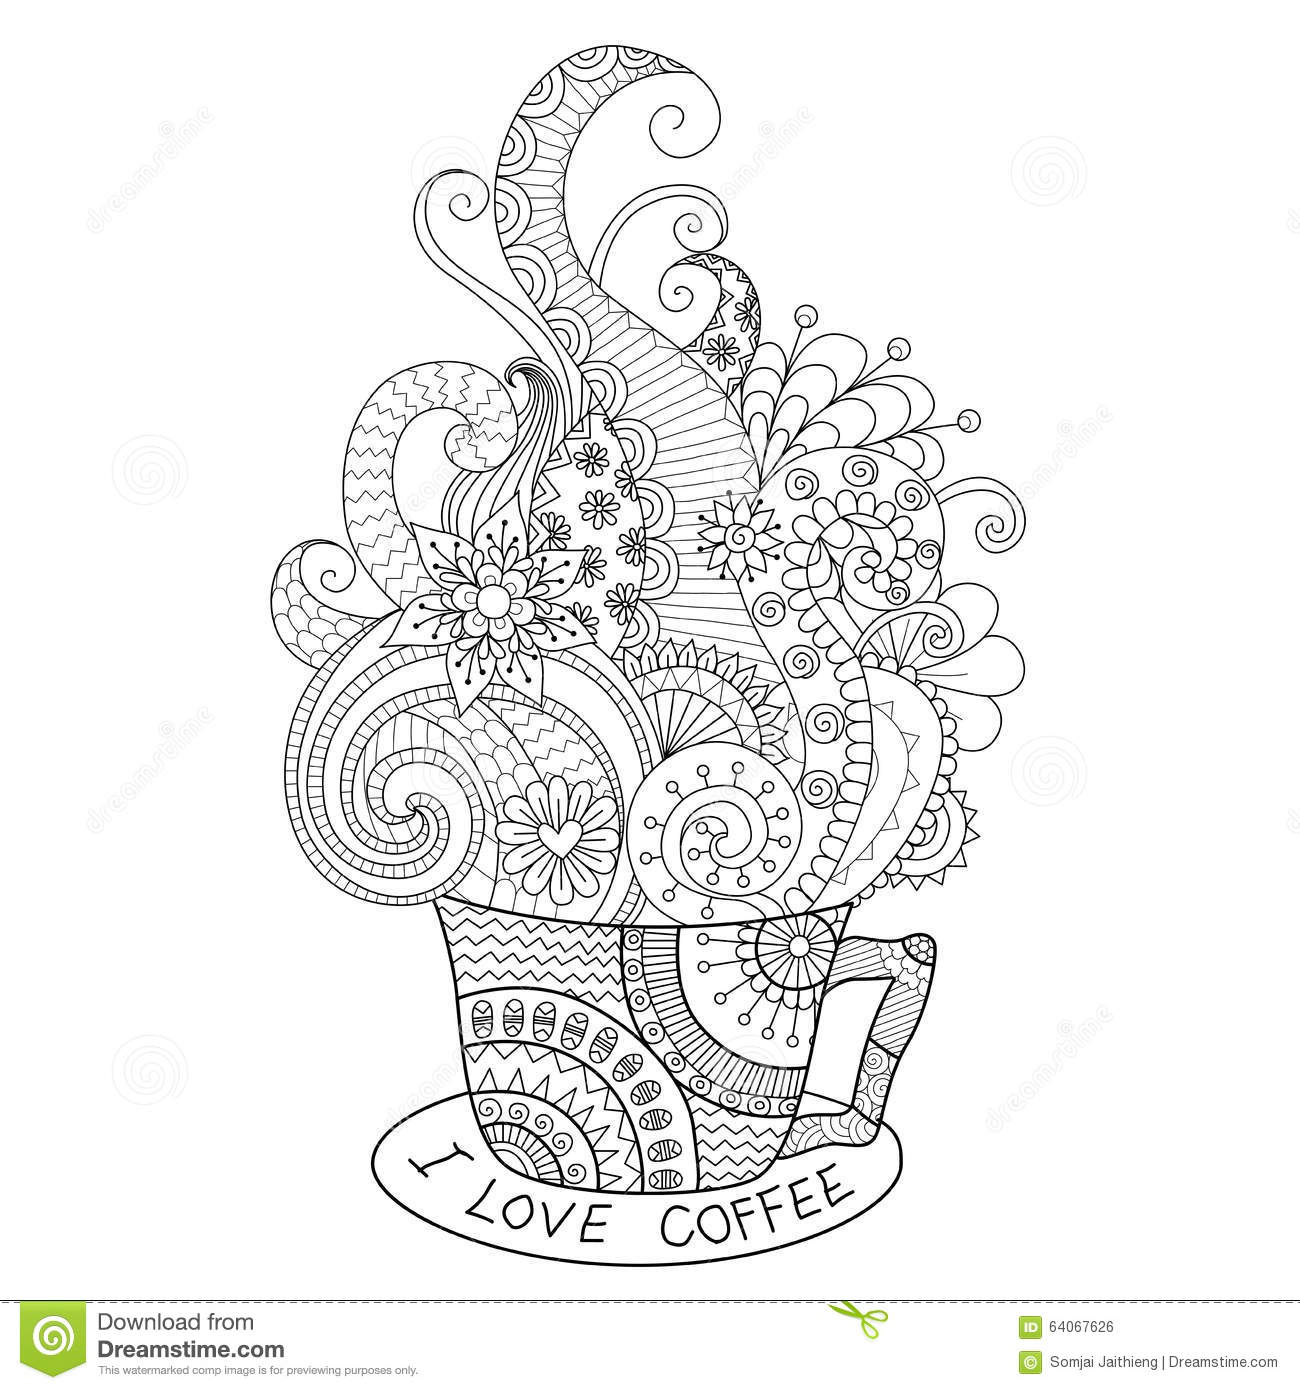 a cup of hot coffee zentangle design for coloring book for. Black Bedroom Furniture Sets. Home Design Ideas